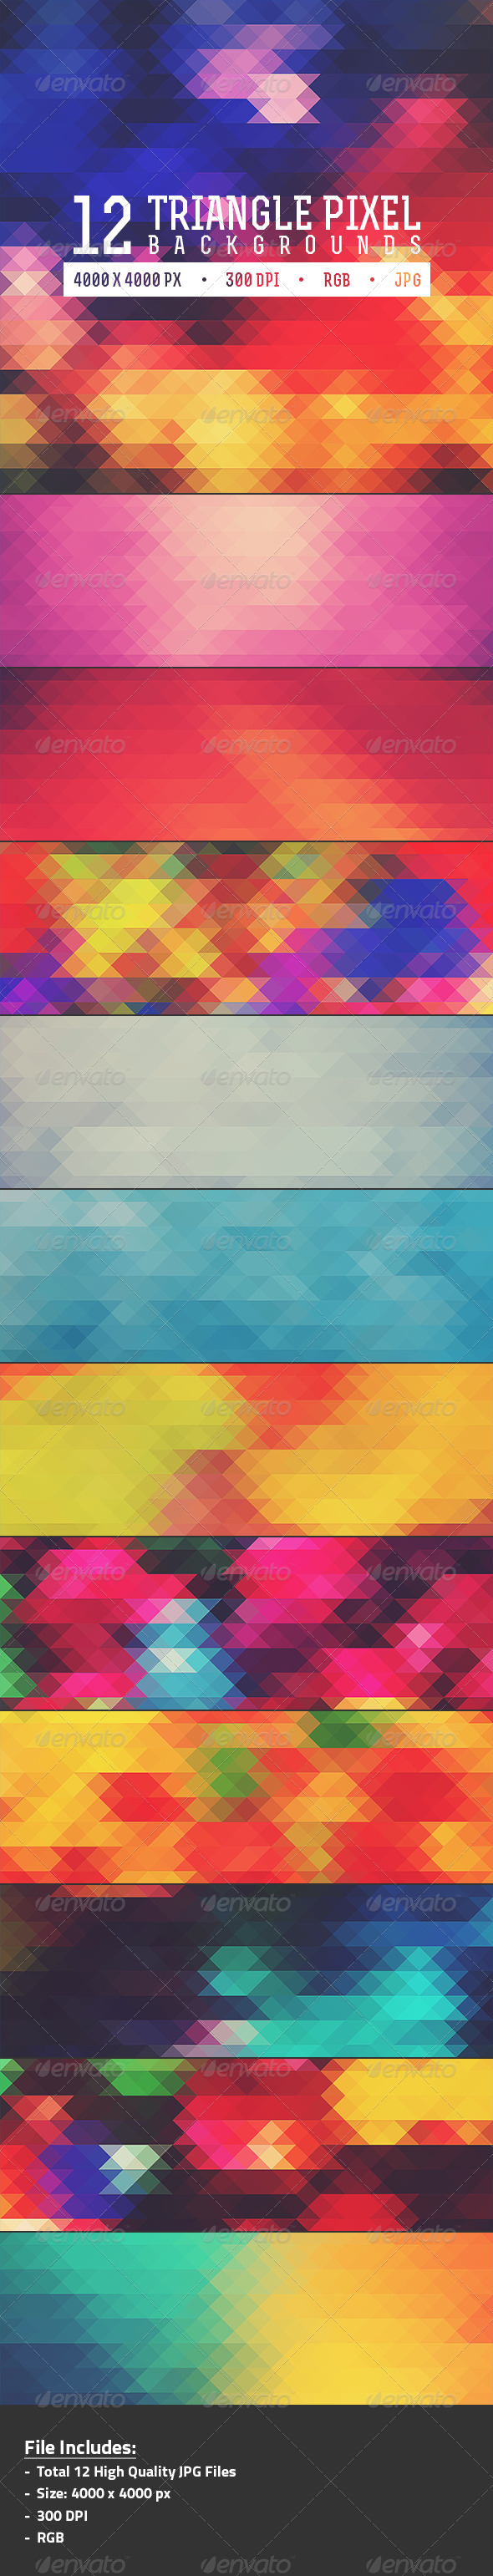 GraphicRiver 12 Triangle Pixel Backgrounds Pack 2 8171664